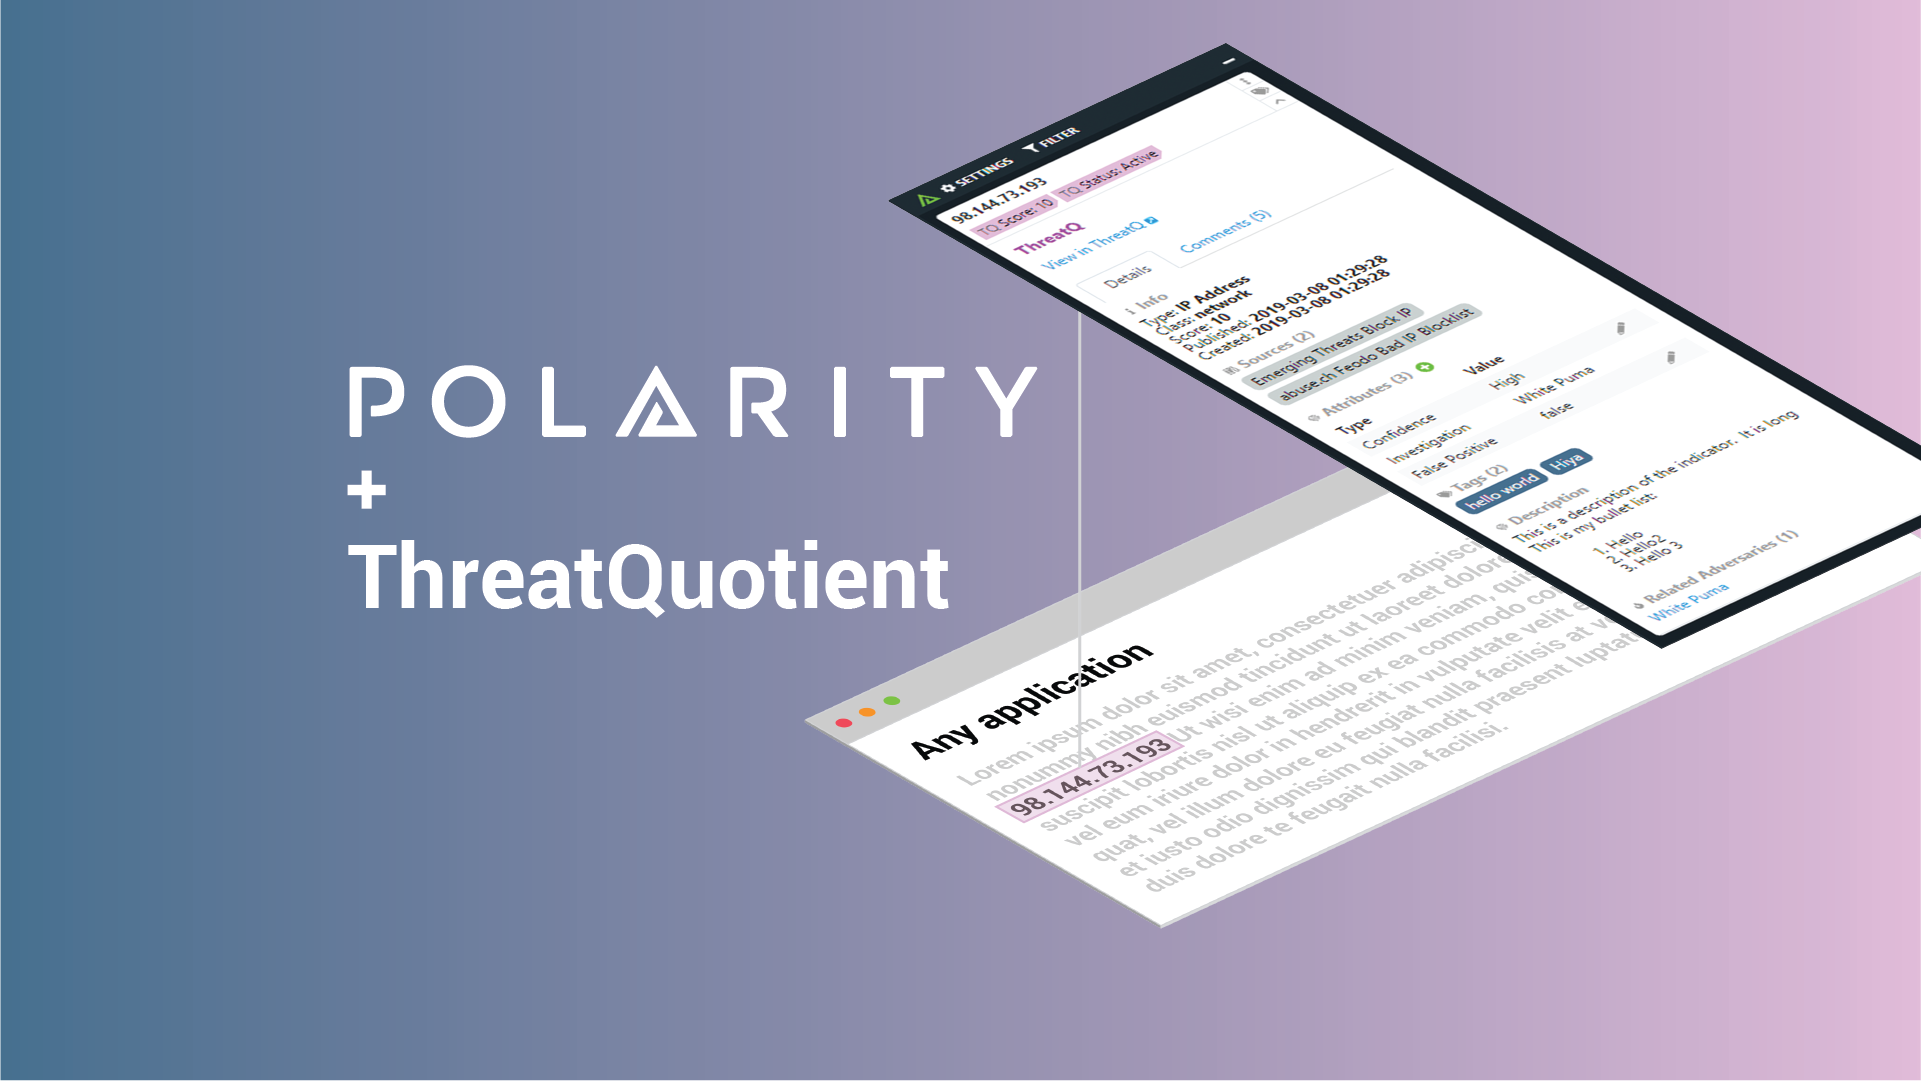 Get Even Better Data Awareness & Recall with the Updated Polarity-ThreatQuotient Integration cover image